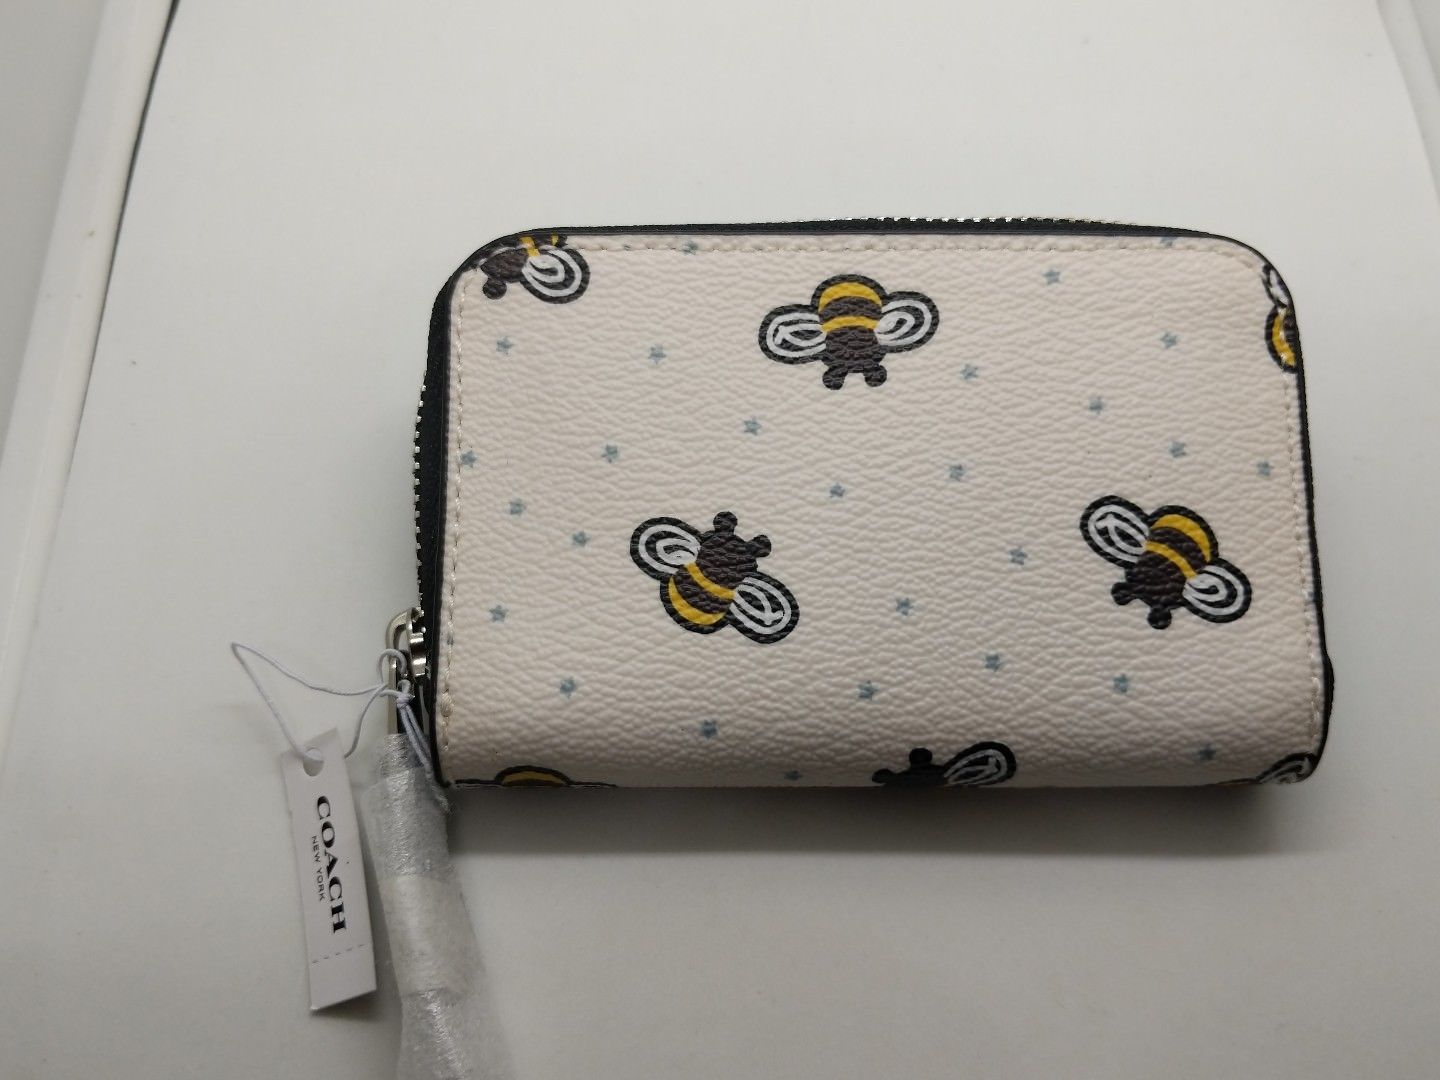 a0a51f0dfe5fd4 ... Coach Limited Edition Bee Print Zip Leather Coin/card Case Mini Wallet  F25885